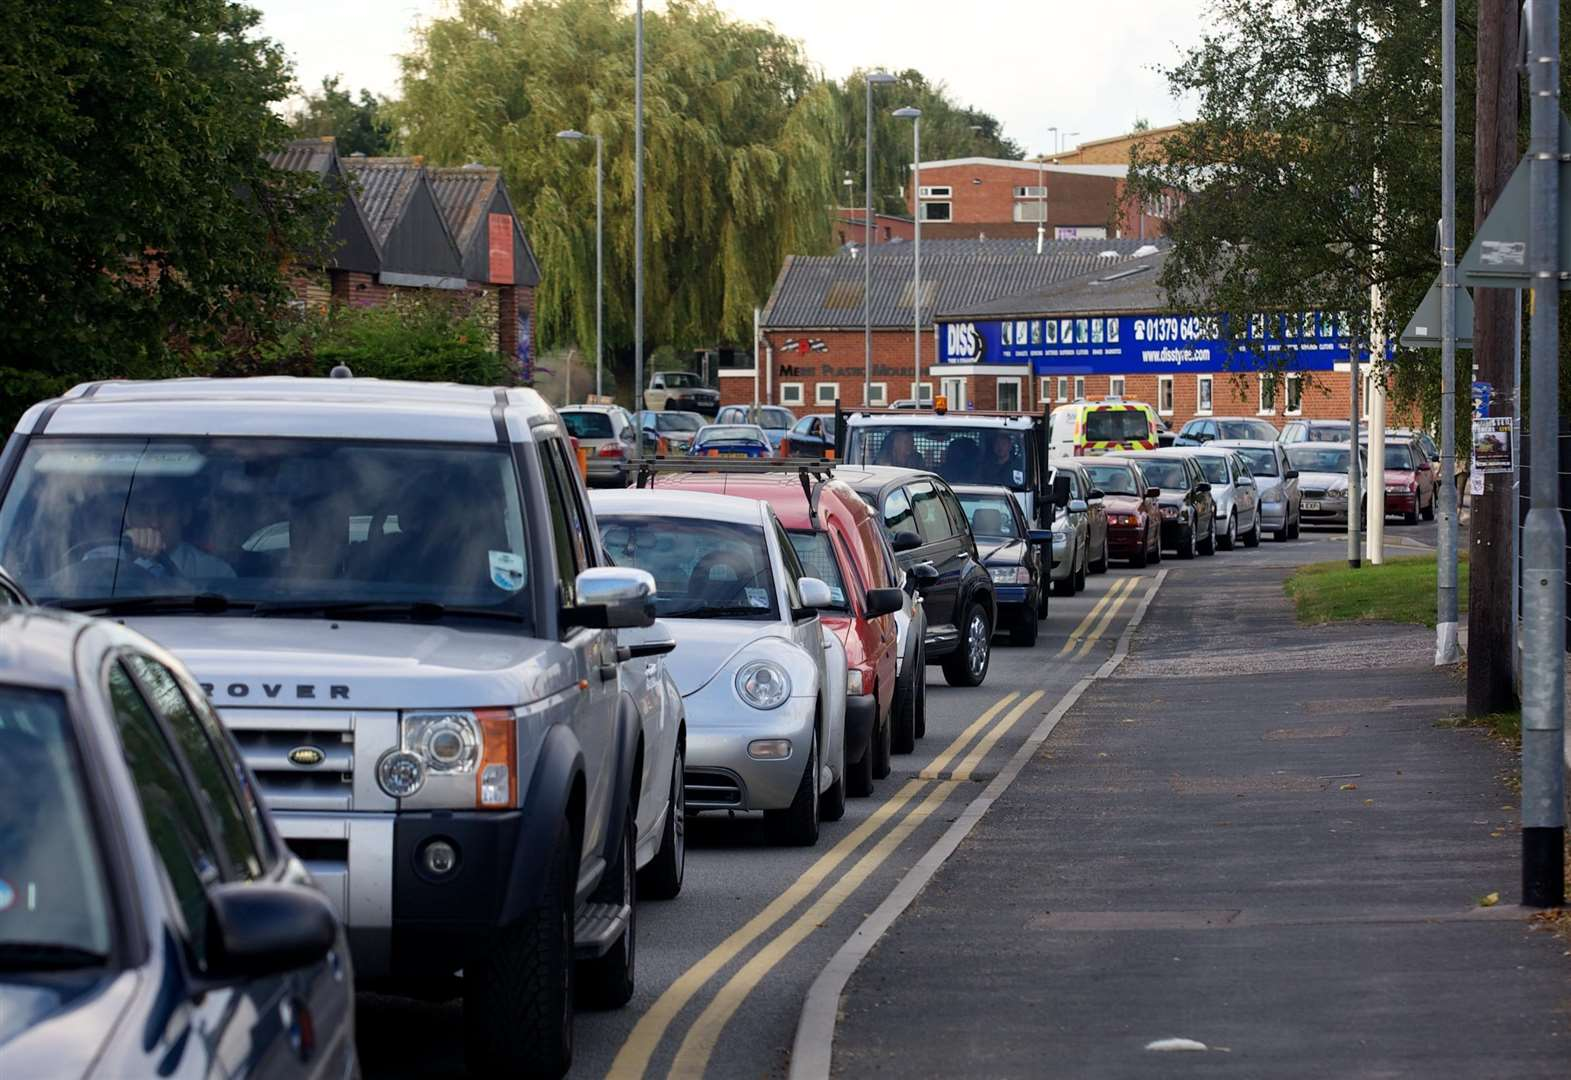 Traffic congestion threatens Diss' future